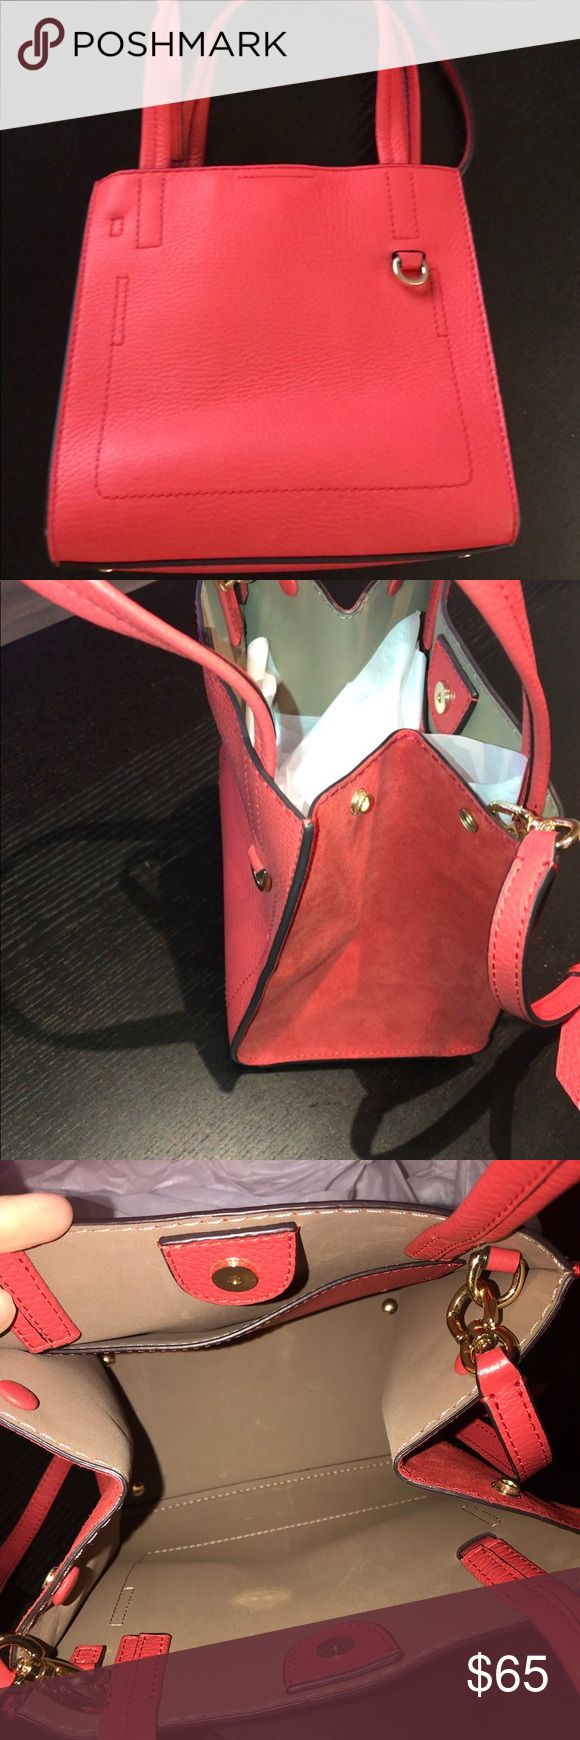 Banana Republic Italian Leather Mini Pebble Tote Italian leather and suede combo. Worn once. Bought with defect (see picture). Brings adjustable cross body strap. Snap buttons allow suede side to be worn closed or open for extra room. Banana Republic Bags Crossbody Bags